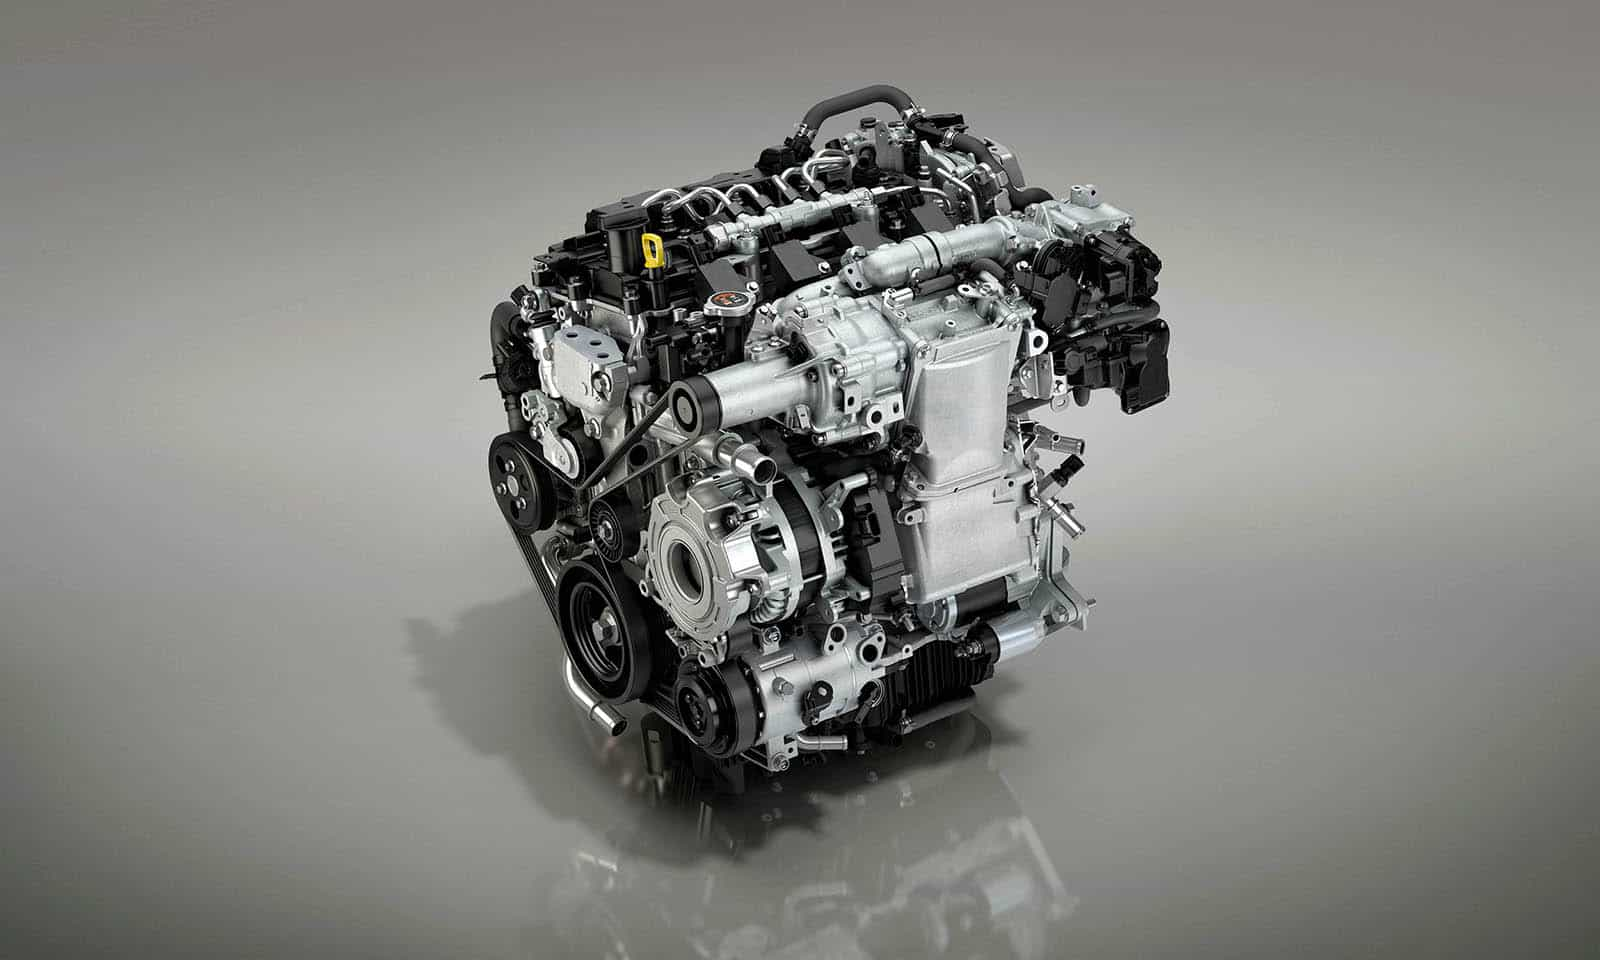 Sales of the next-gen Mazda 3 (see video) with the new 2.0-liter Skyactiv-X engine began in the end of 2019, and now, the innovative mill receives a handful of improvements.